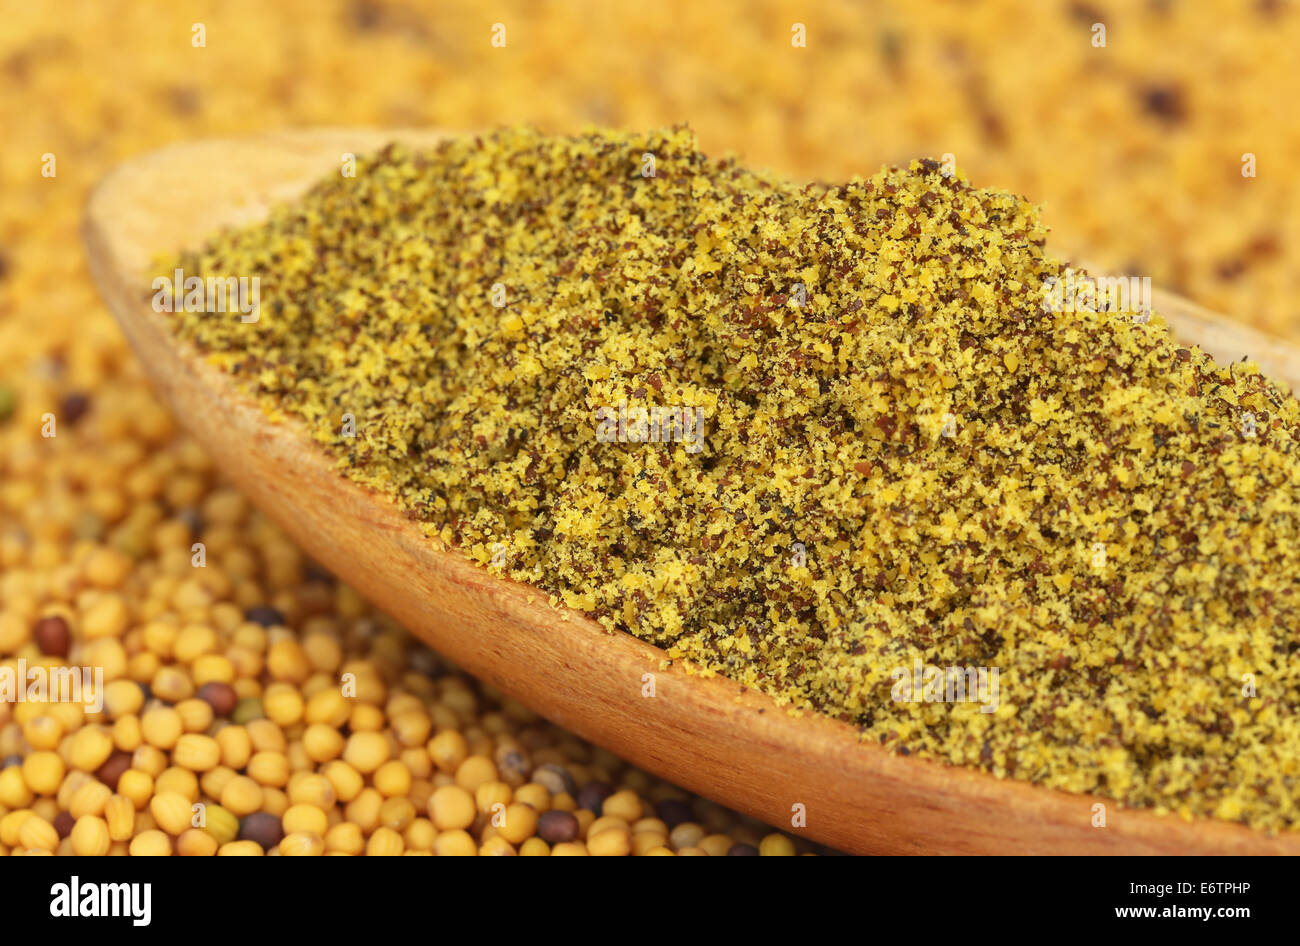 Ground Mustard High Resolution Stock Photography And Images Alamy